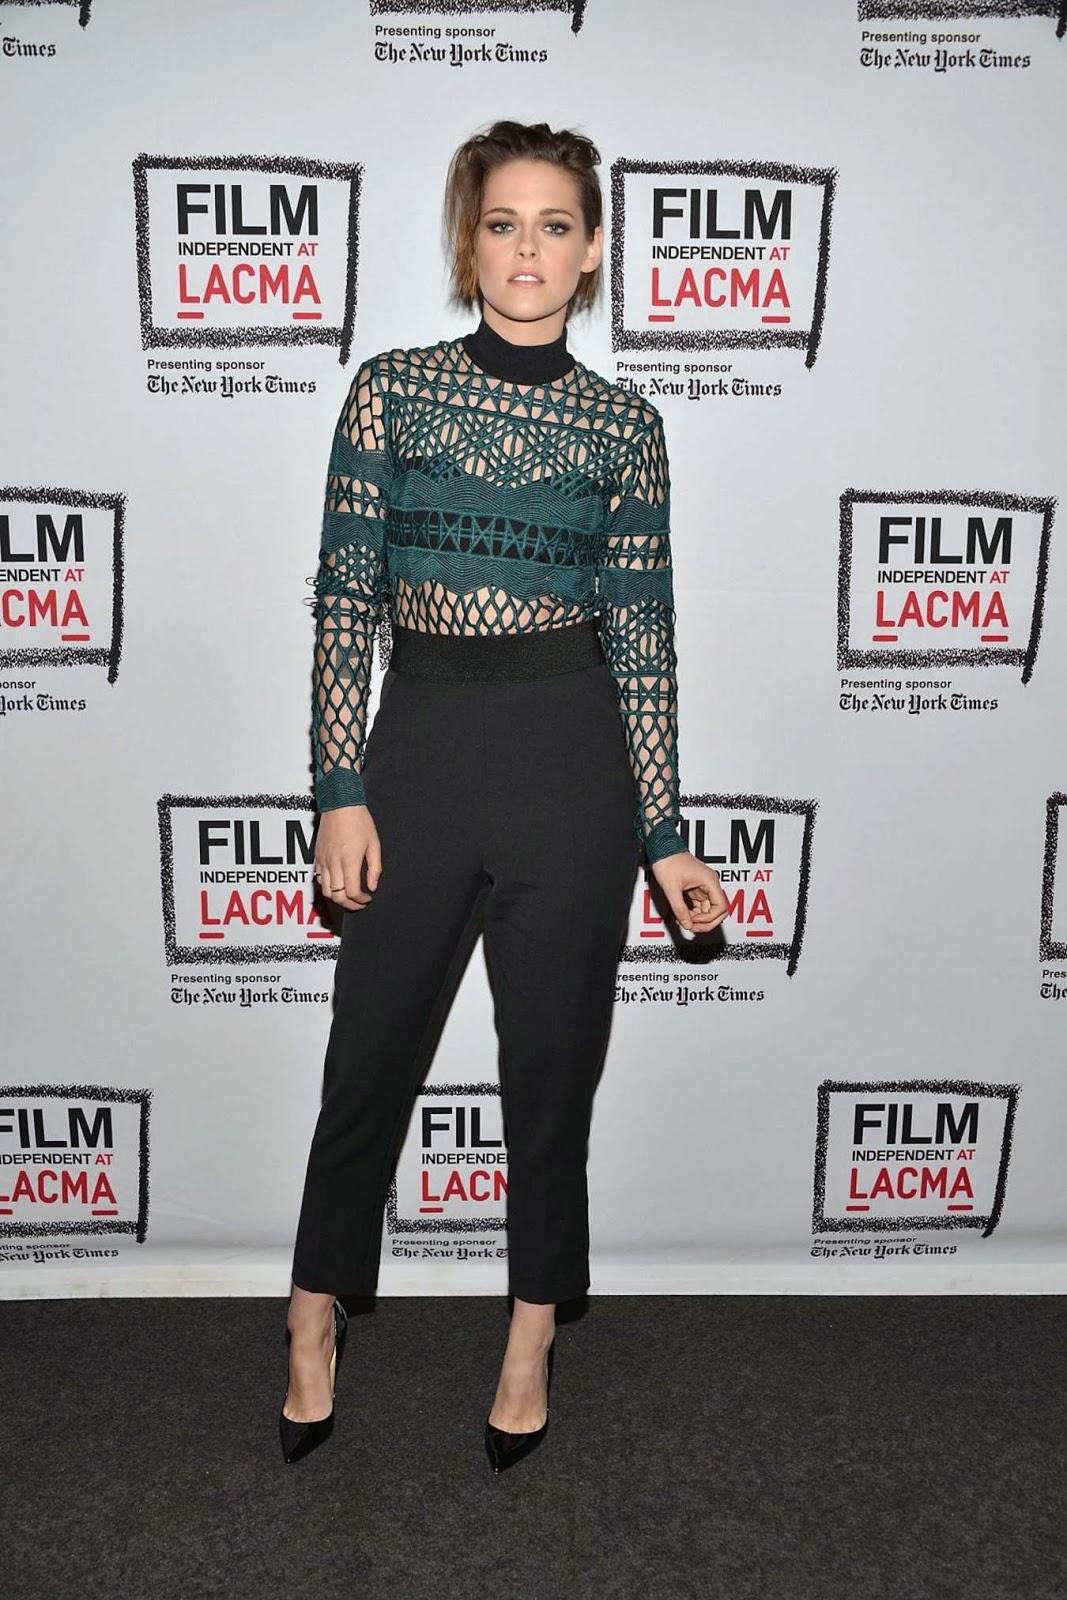 Kristen Stewart flashes bra in crochet top at the 'Clouds of Sils Maria' Screening at LACMA in LA